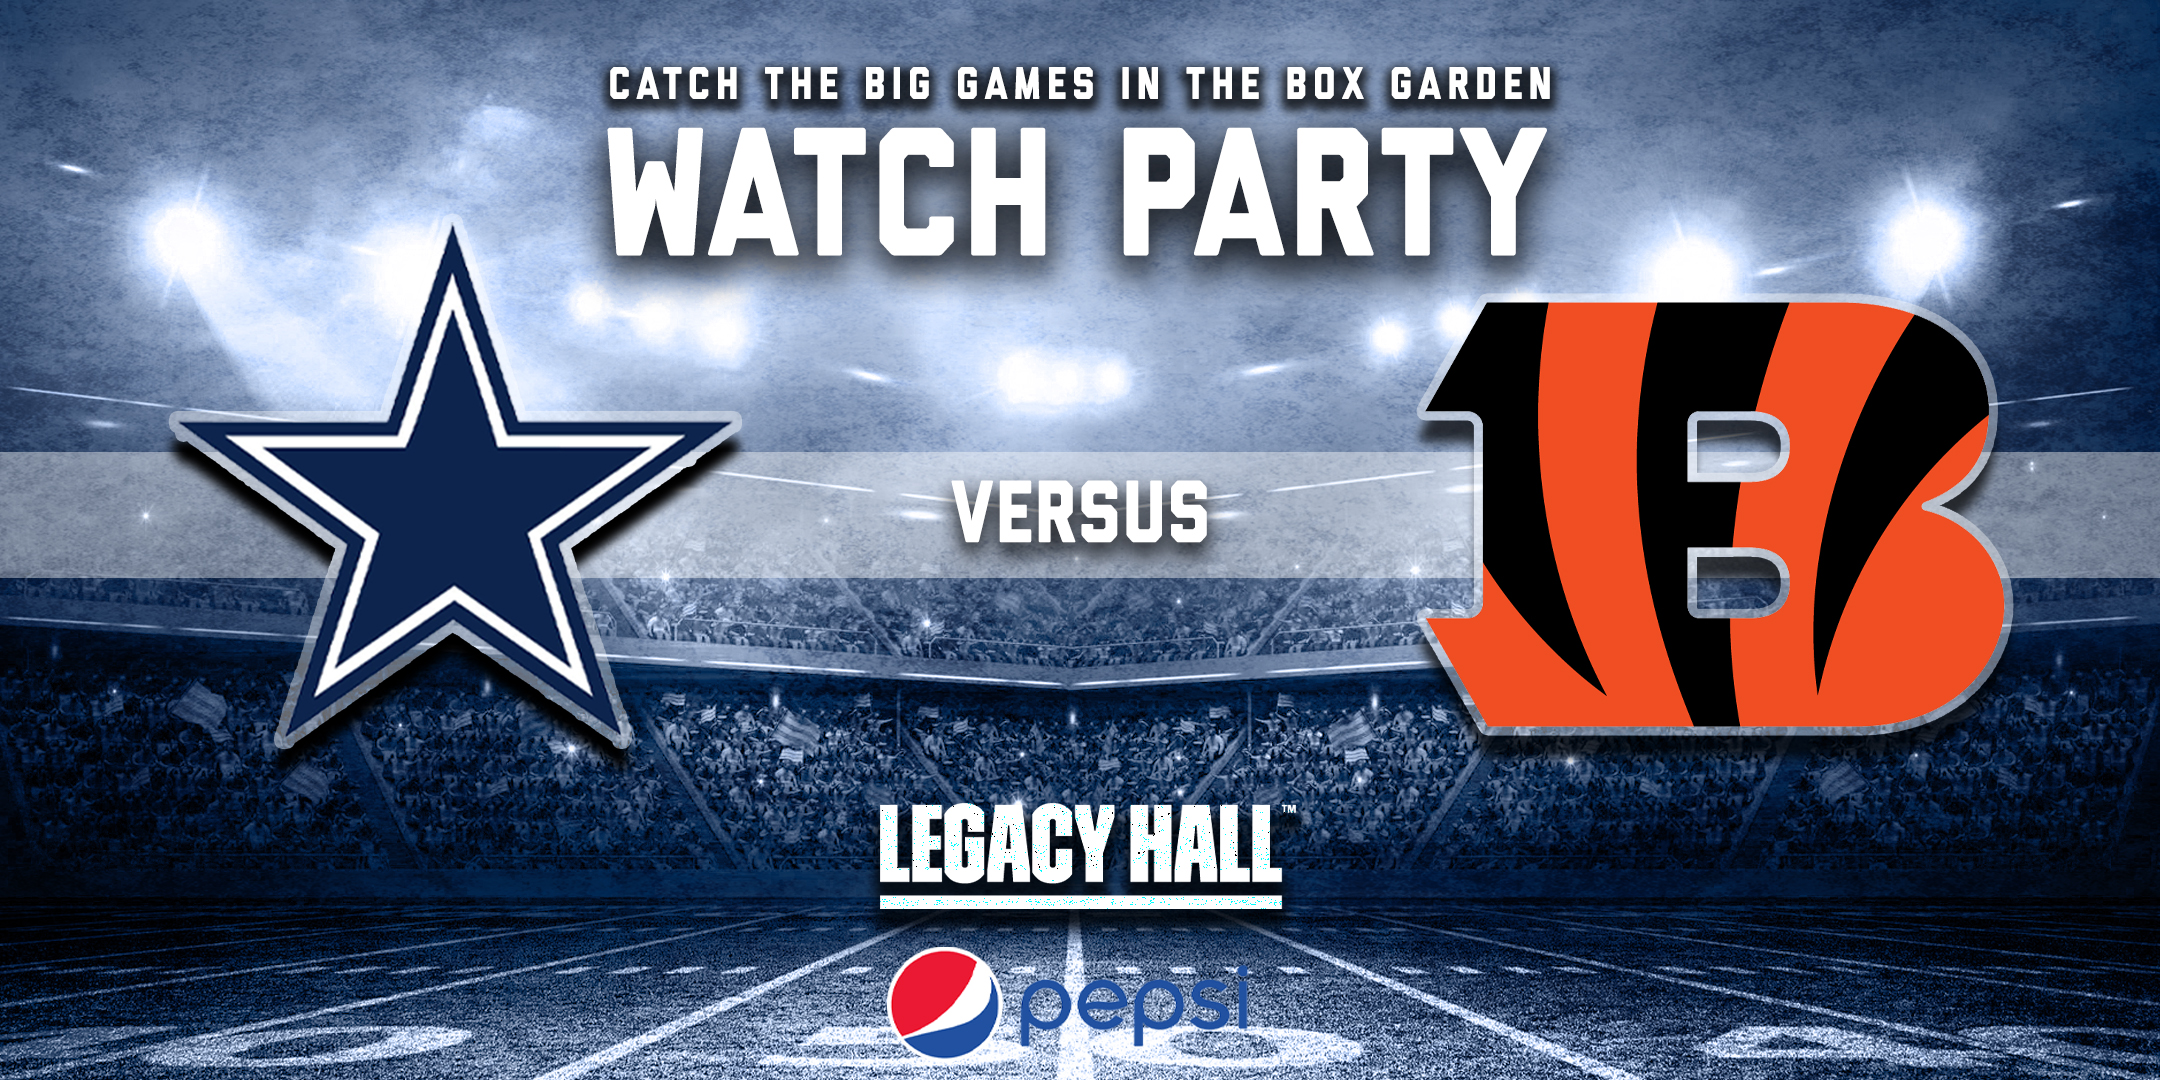 Promo image of Cowboys vs. Bengals Watch Party